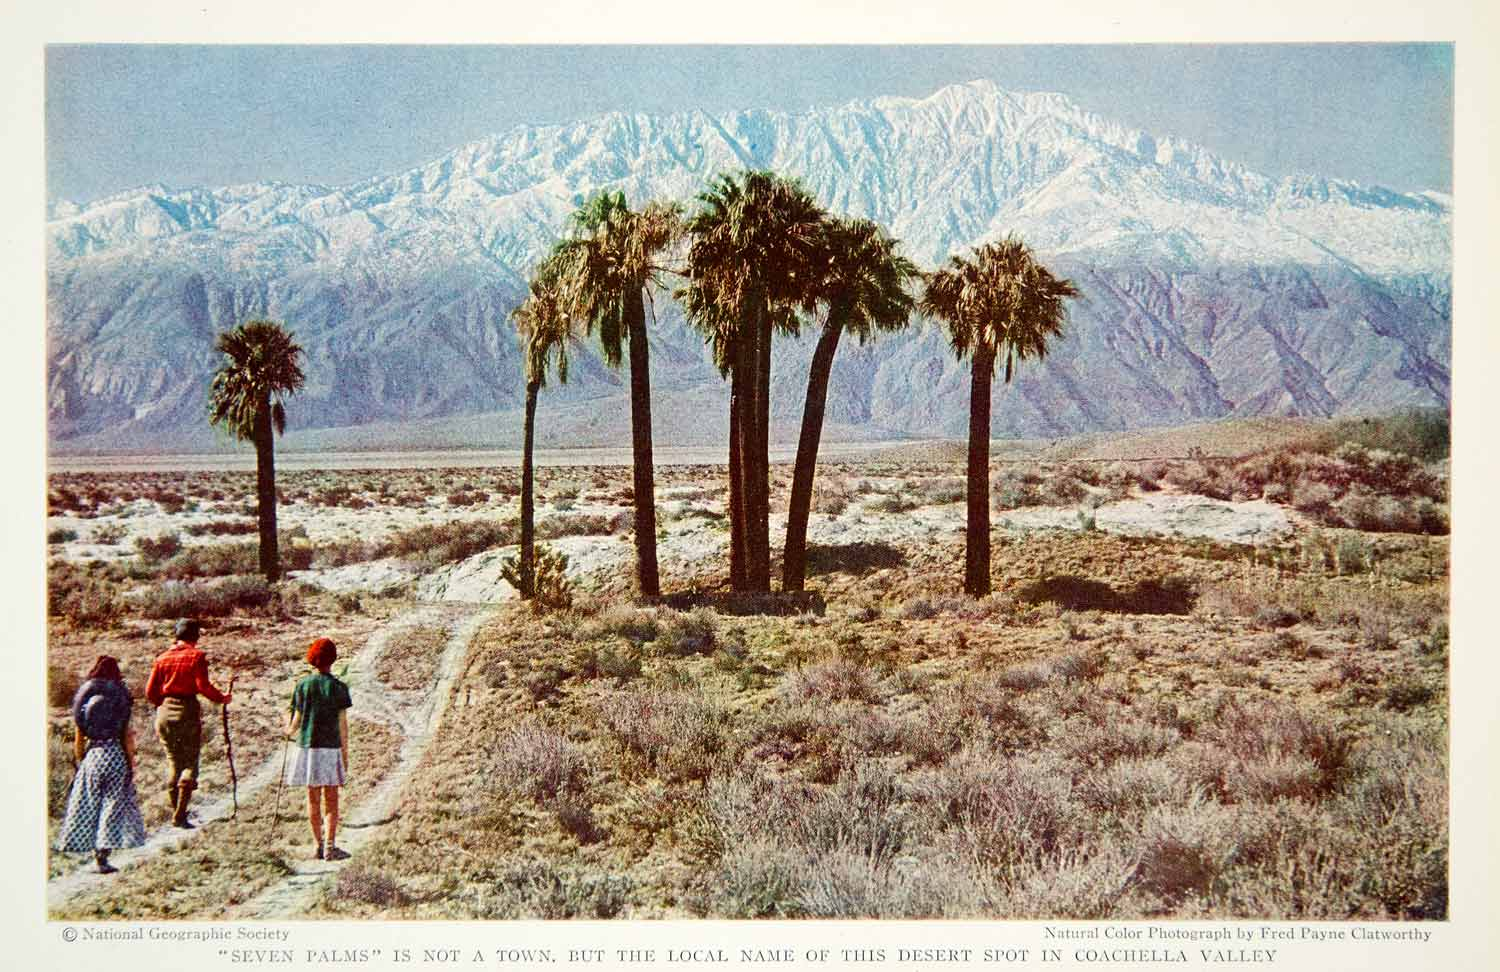 1934 Color Print Coachella Valley California Seven Palms Landscape Image  NGMA6